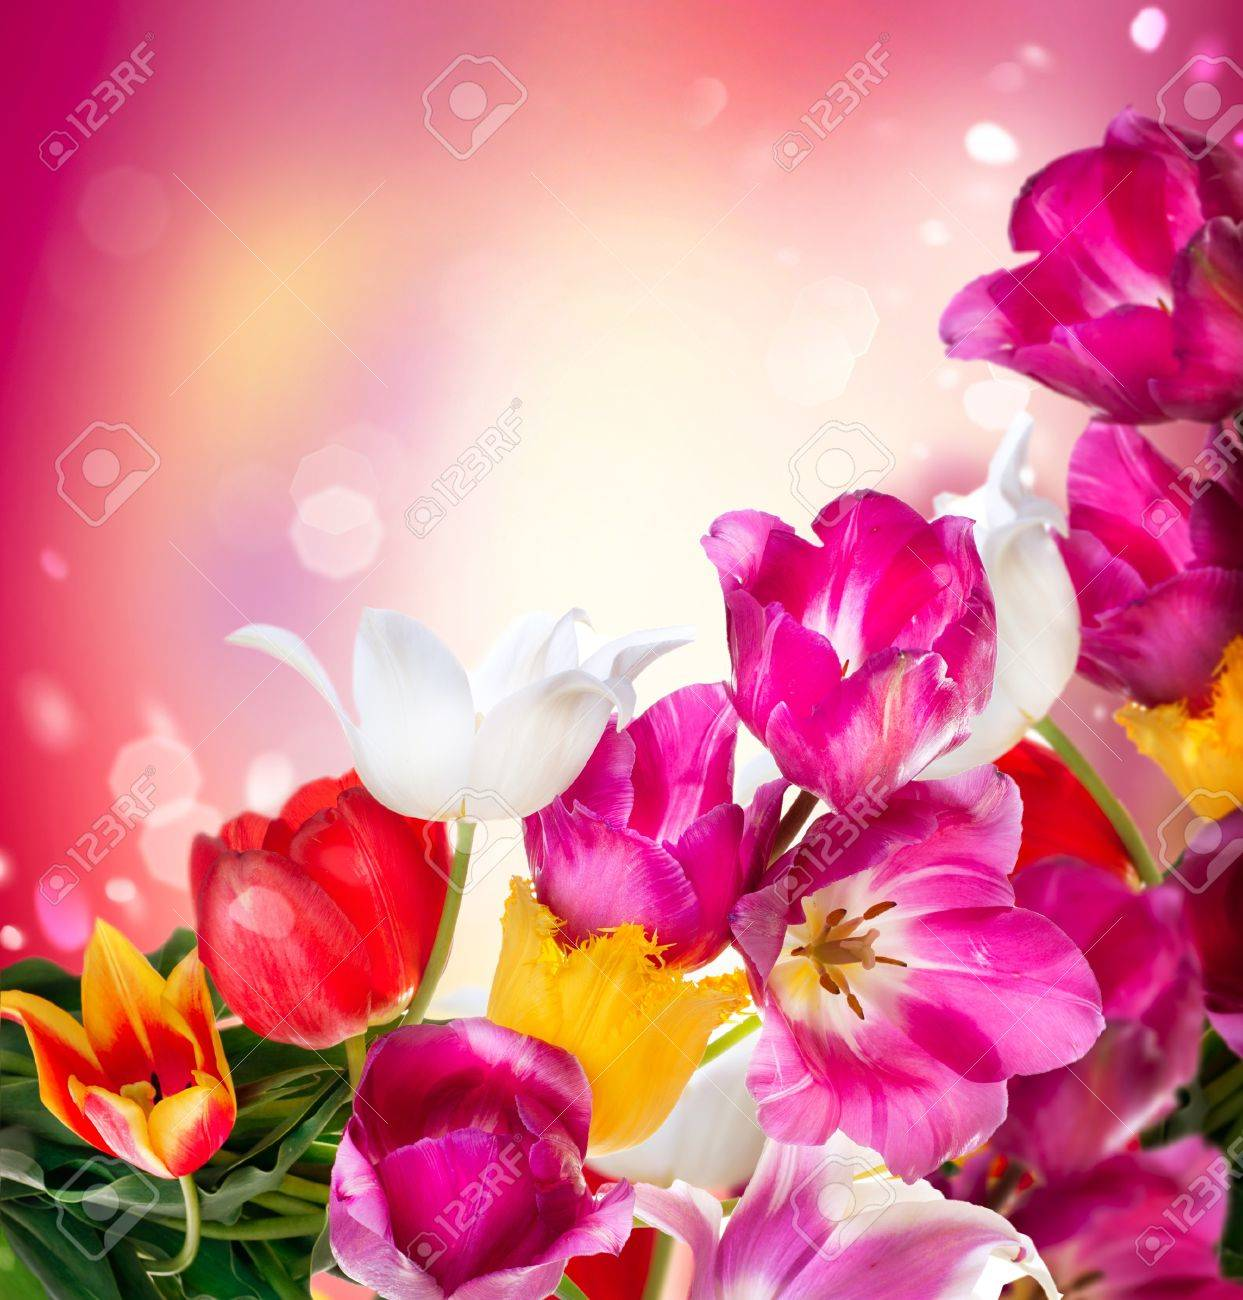 Spring flowers tulips bunch stock photo picture and royalty free spring flowers tulips bunch stock photo 18696820 mightylinksfo Image collections